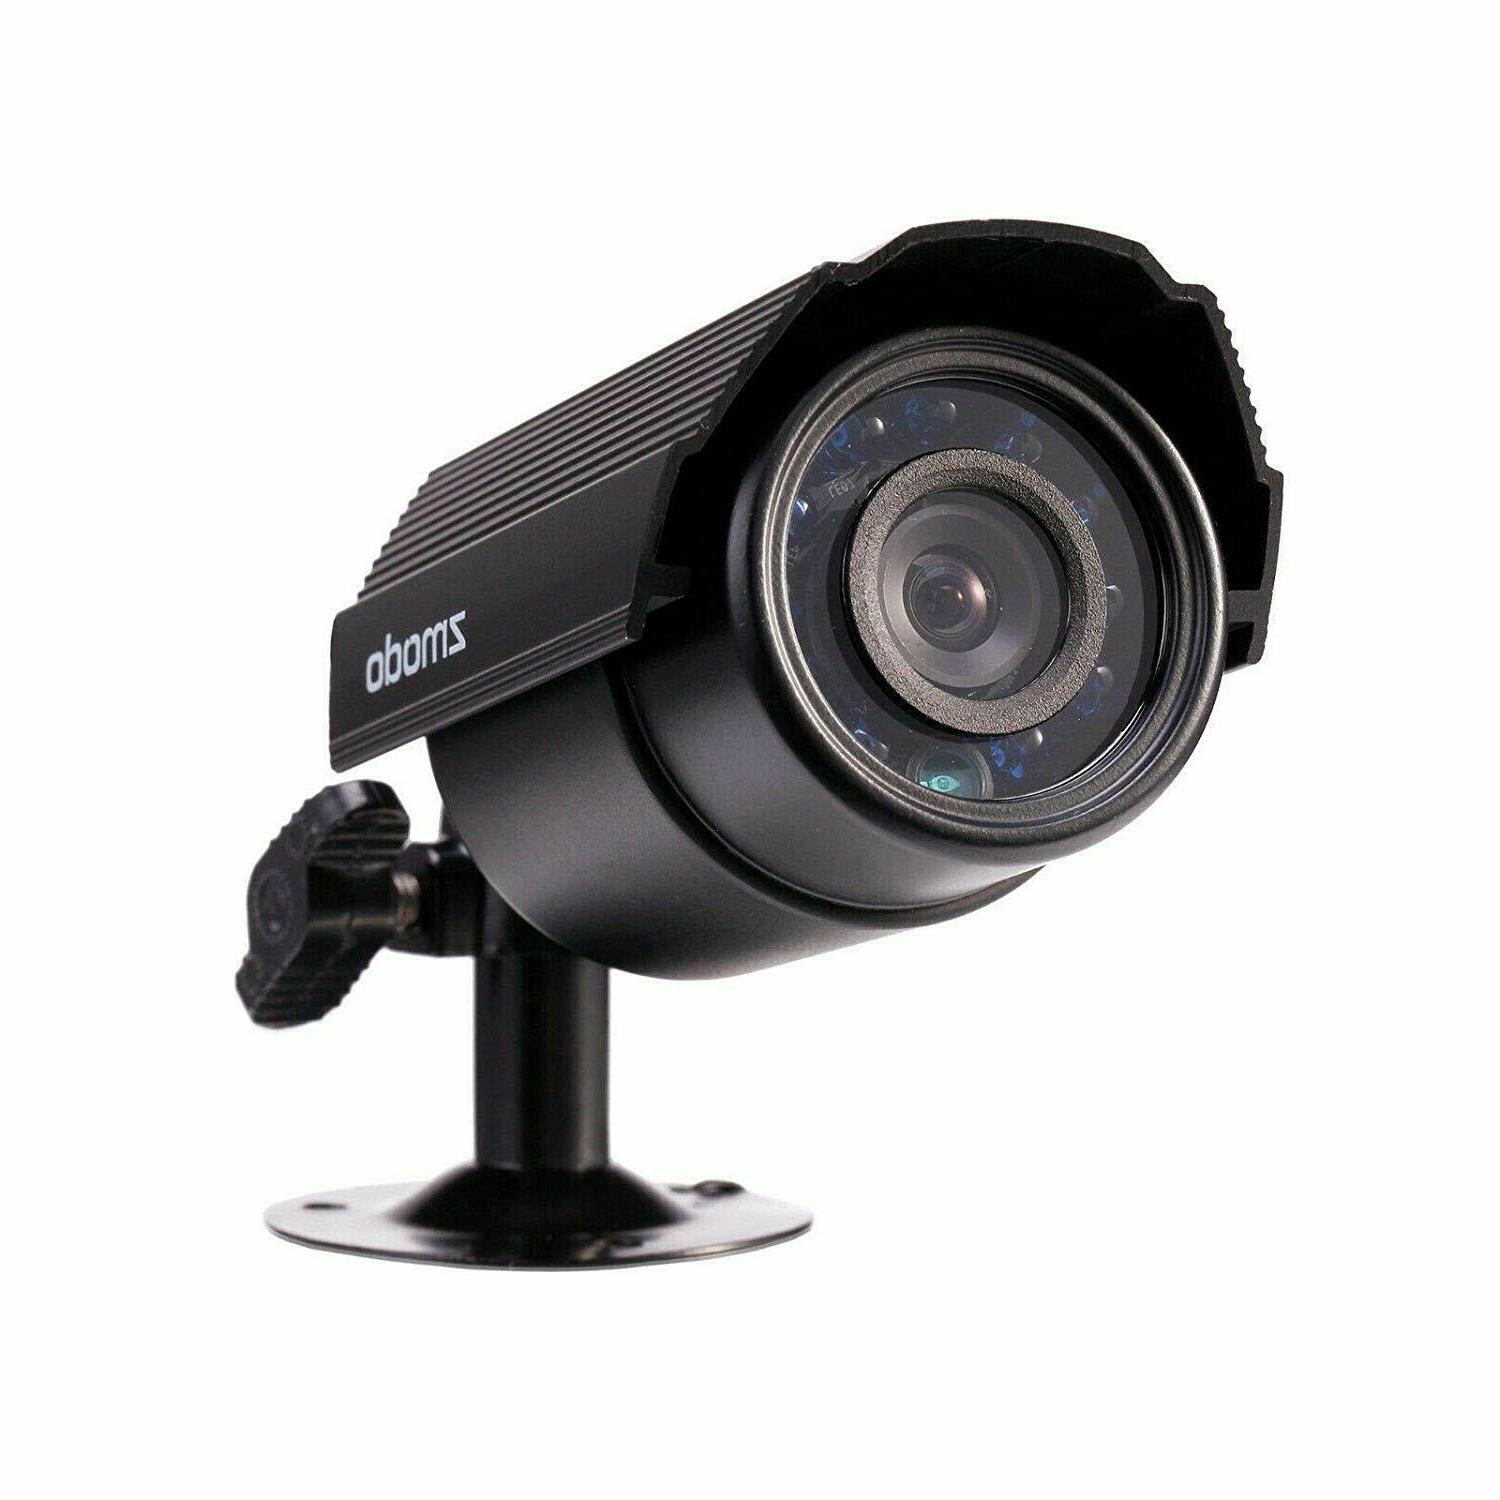 Zmodo 700TVL HD Bullet Security w/Night Vision